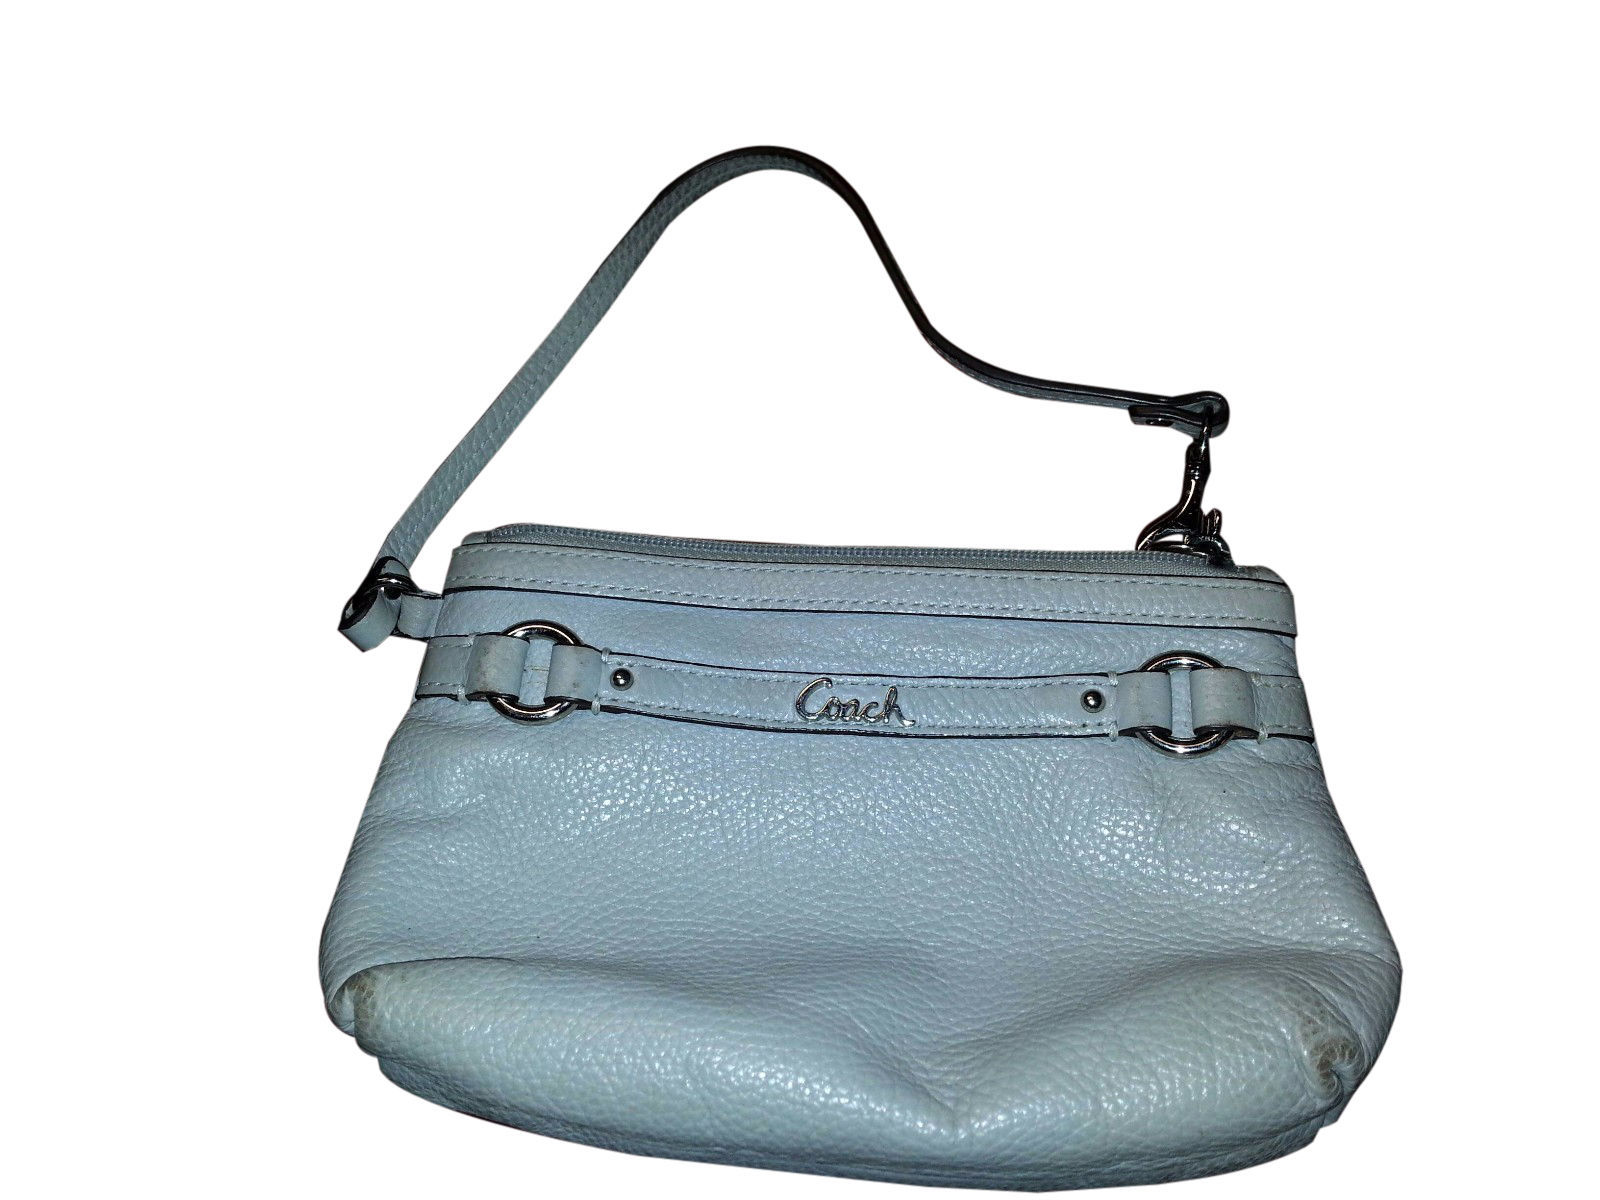 COACH Gallery Leather Wristlet - Gray/Silver Hardware